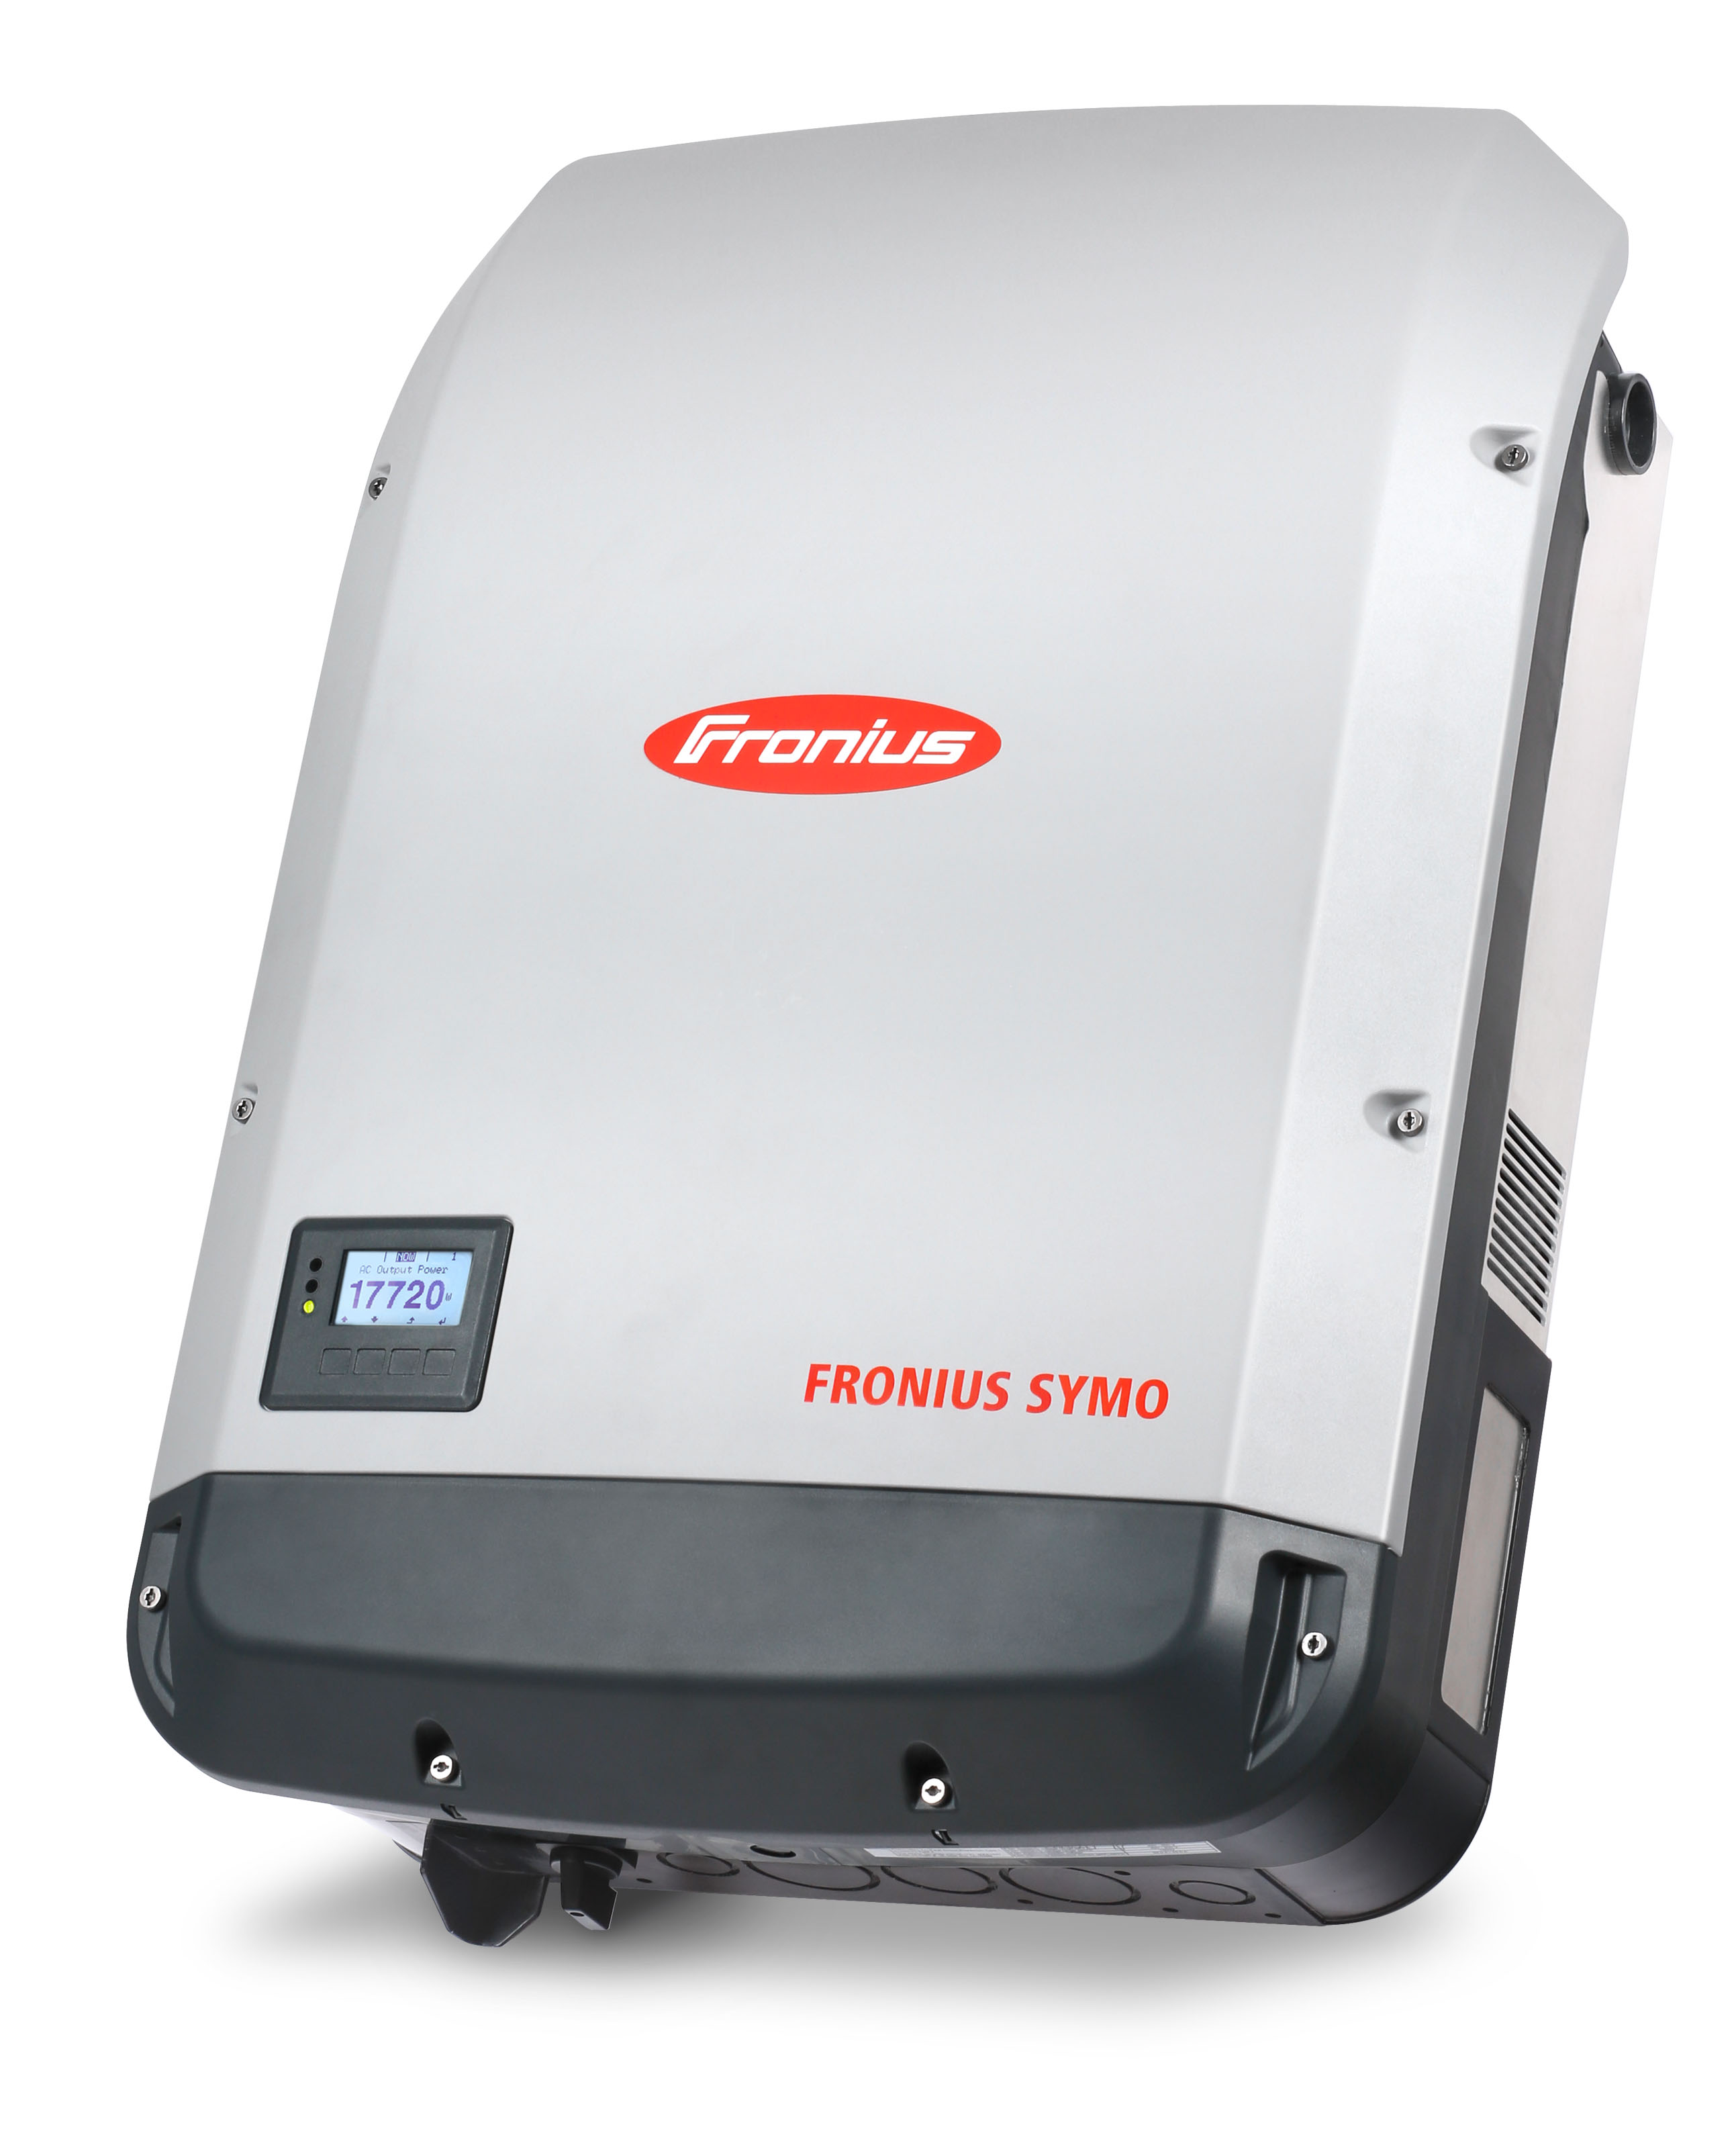 FRONIUS, SYMO 10.0-3 208/240, NON-ISOLATED STRING INVERTER, 10 KW, 208 VAC, LITE - NO DATAMANAGER 2.0 CARD